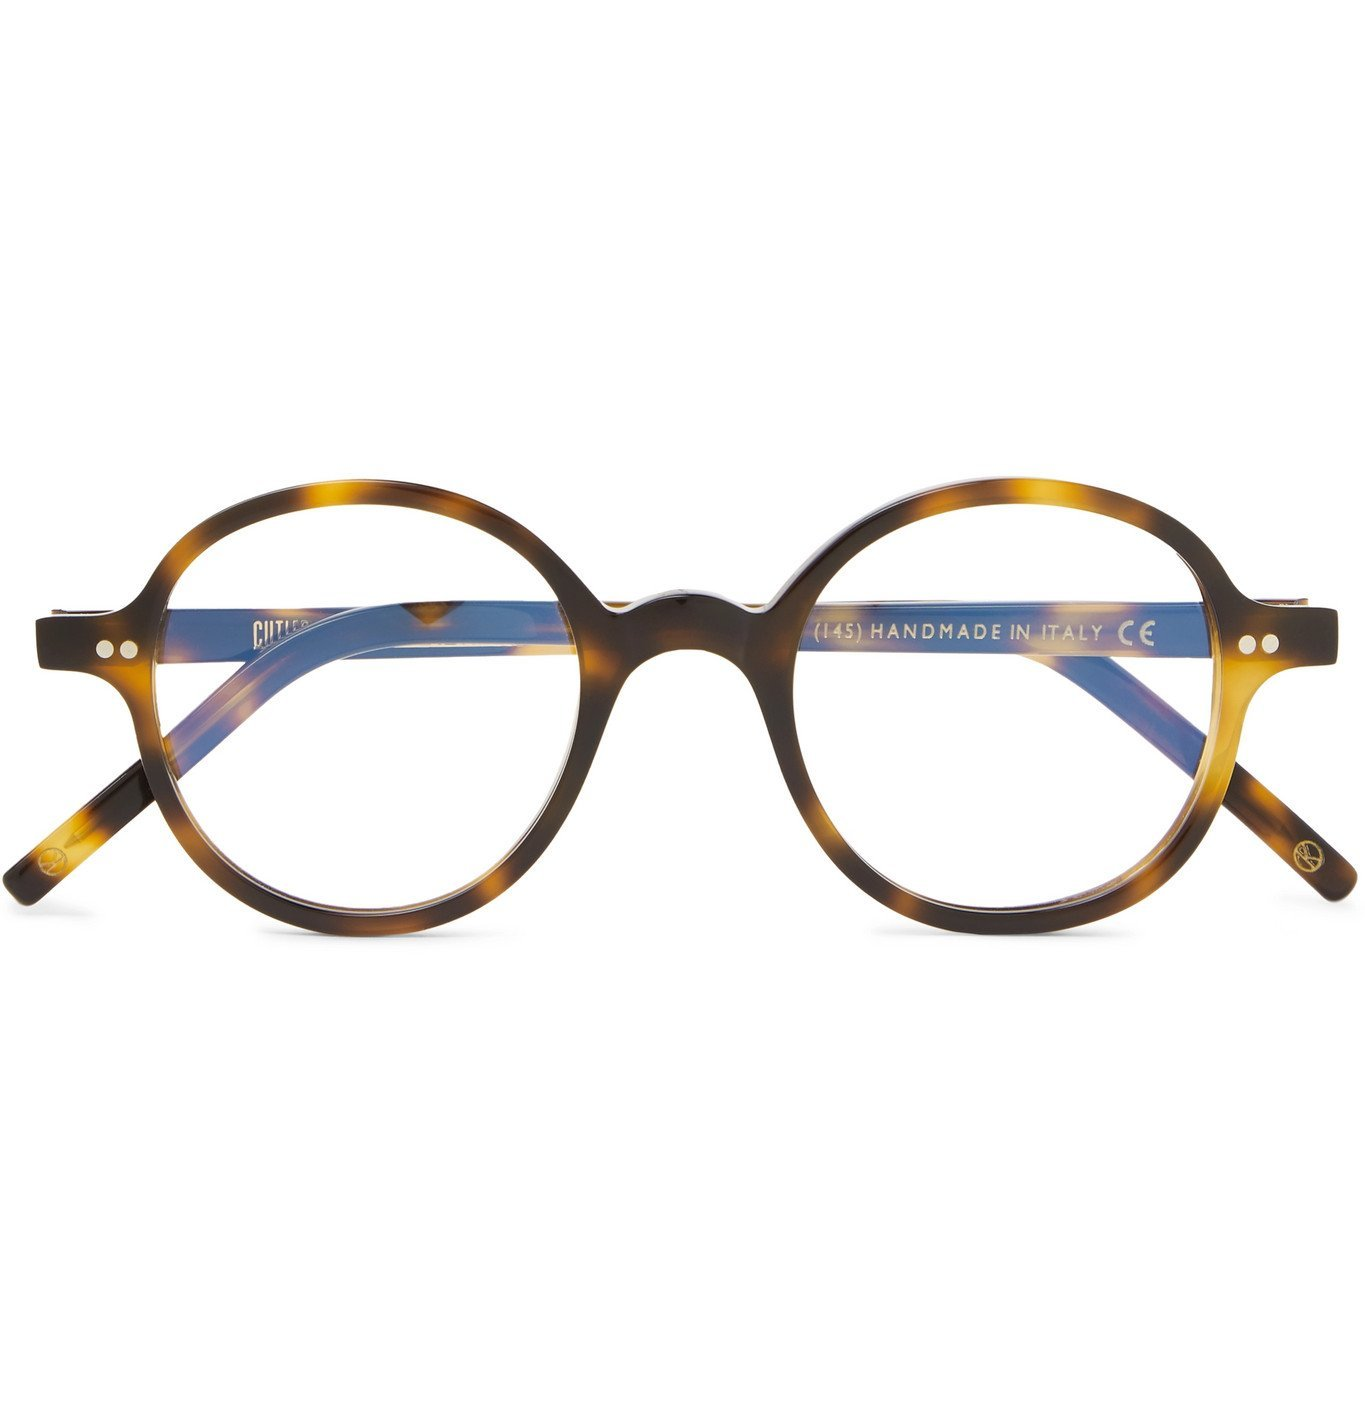 Photo: Kingsman - Cutler and Gross Round-Frame Tortoiseshell Acetate Optical Glasses - Tortoiseshell